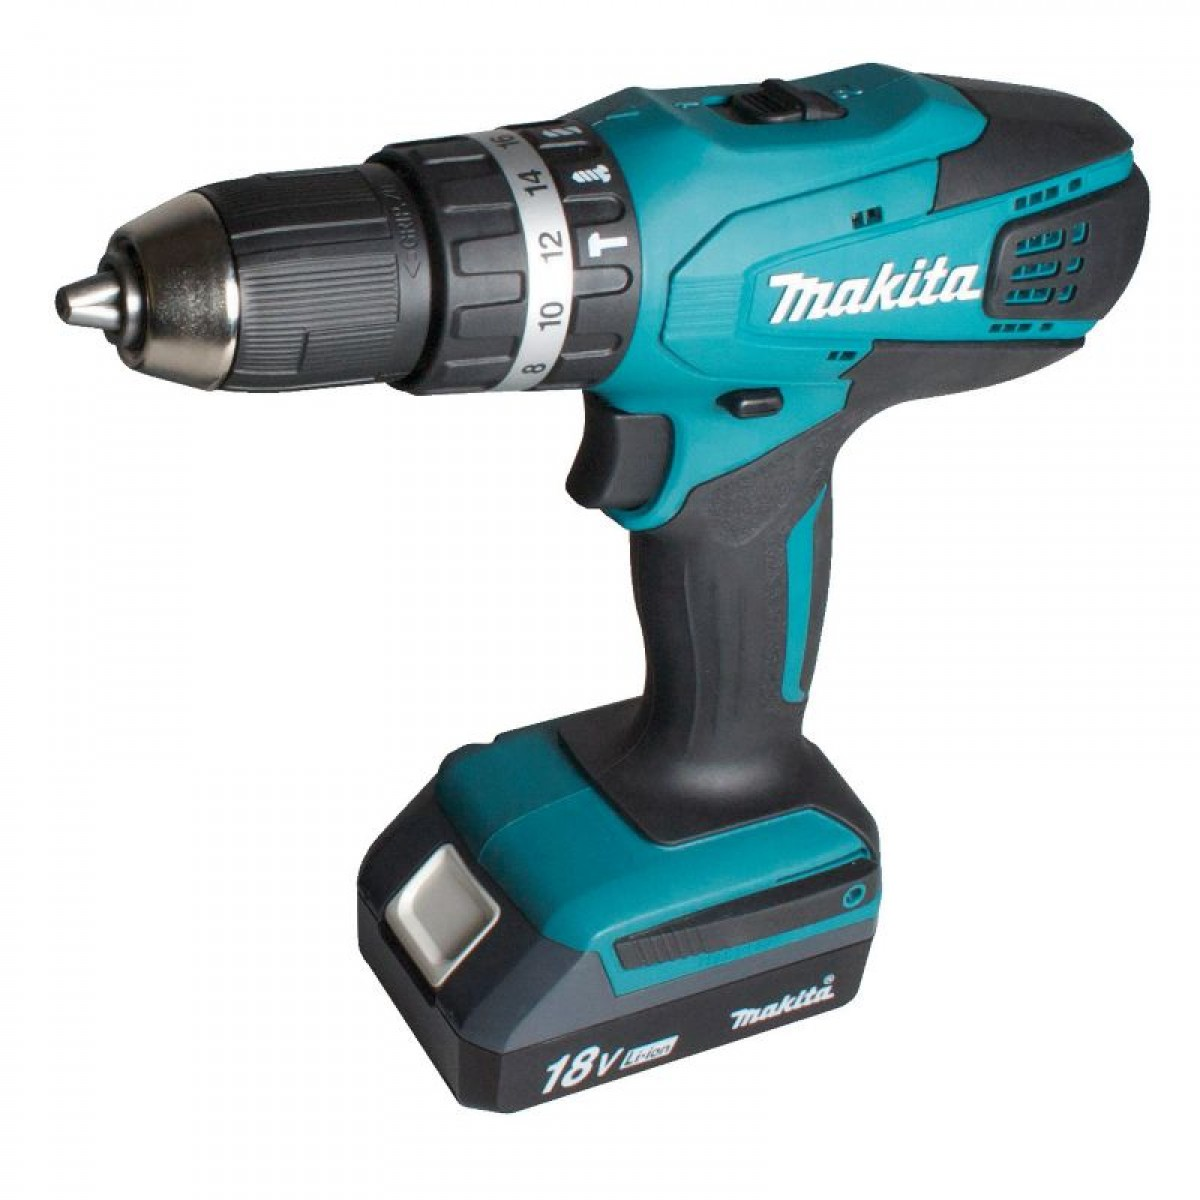 makita percussion drill screwdriver 18v 2 1 3 ah batteries. Black Bedroom Furniture Sets. Home Design Ideas